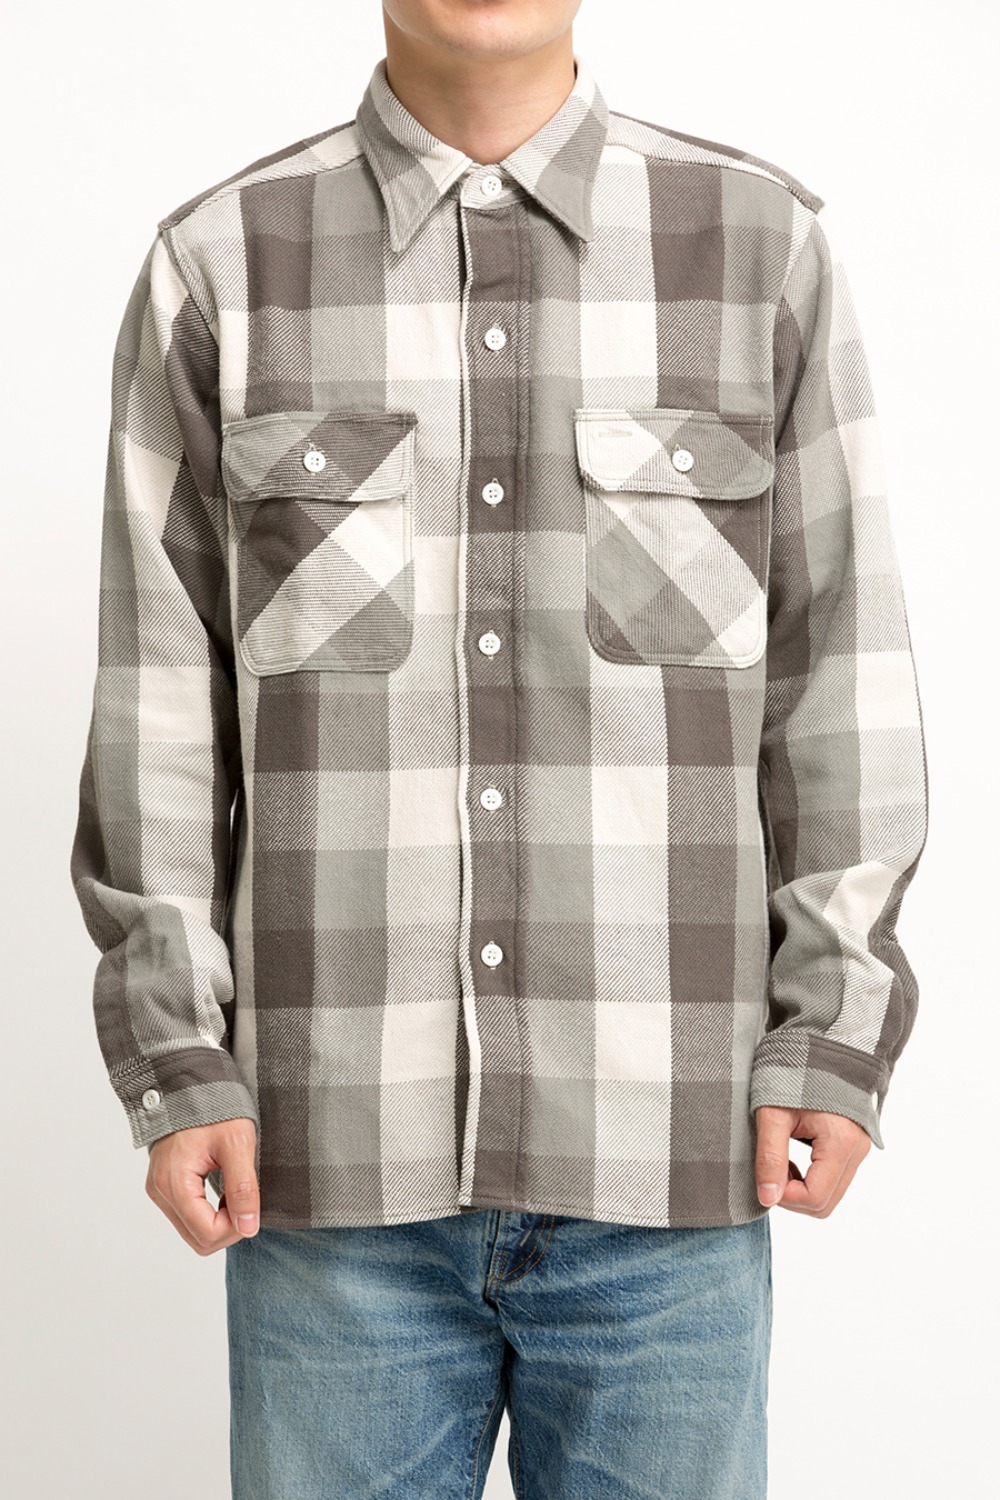 LOT 3104 FLANNEL SHIRTS PATTERN C GREY